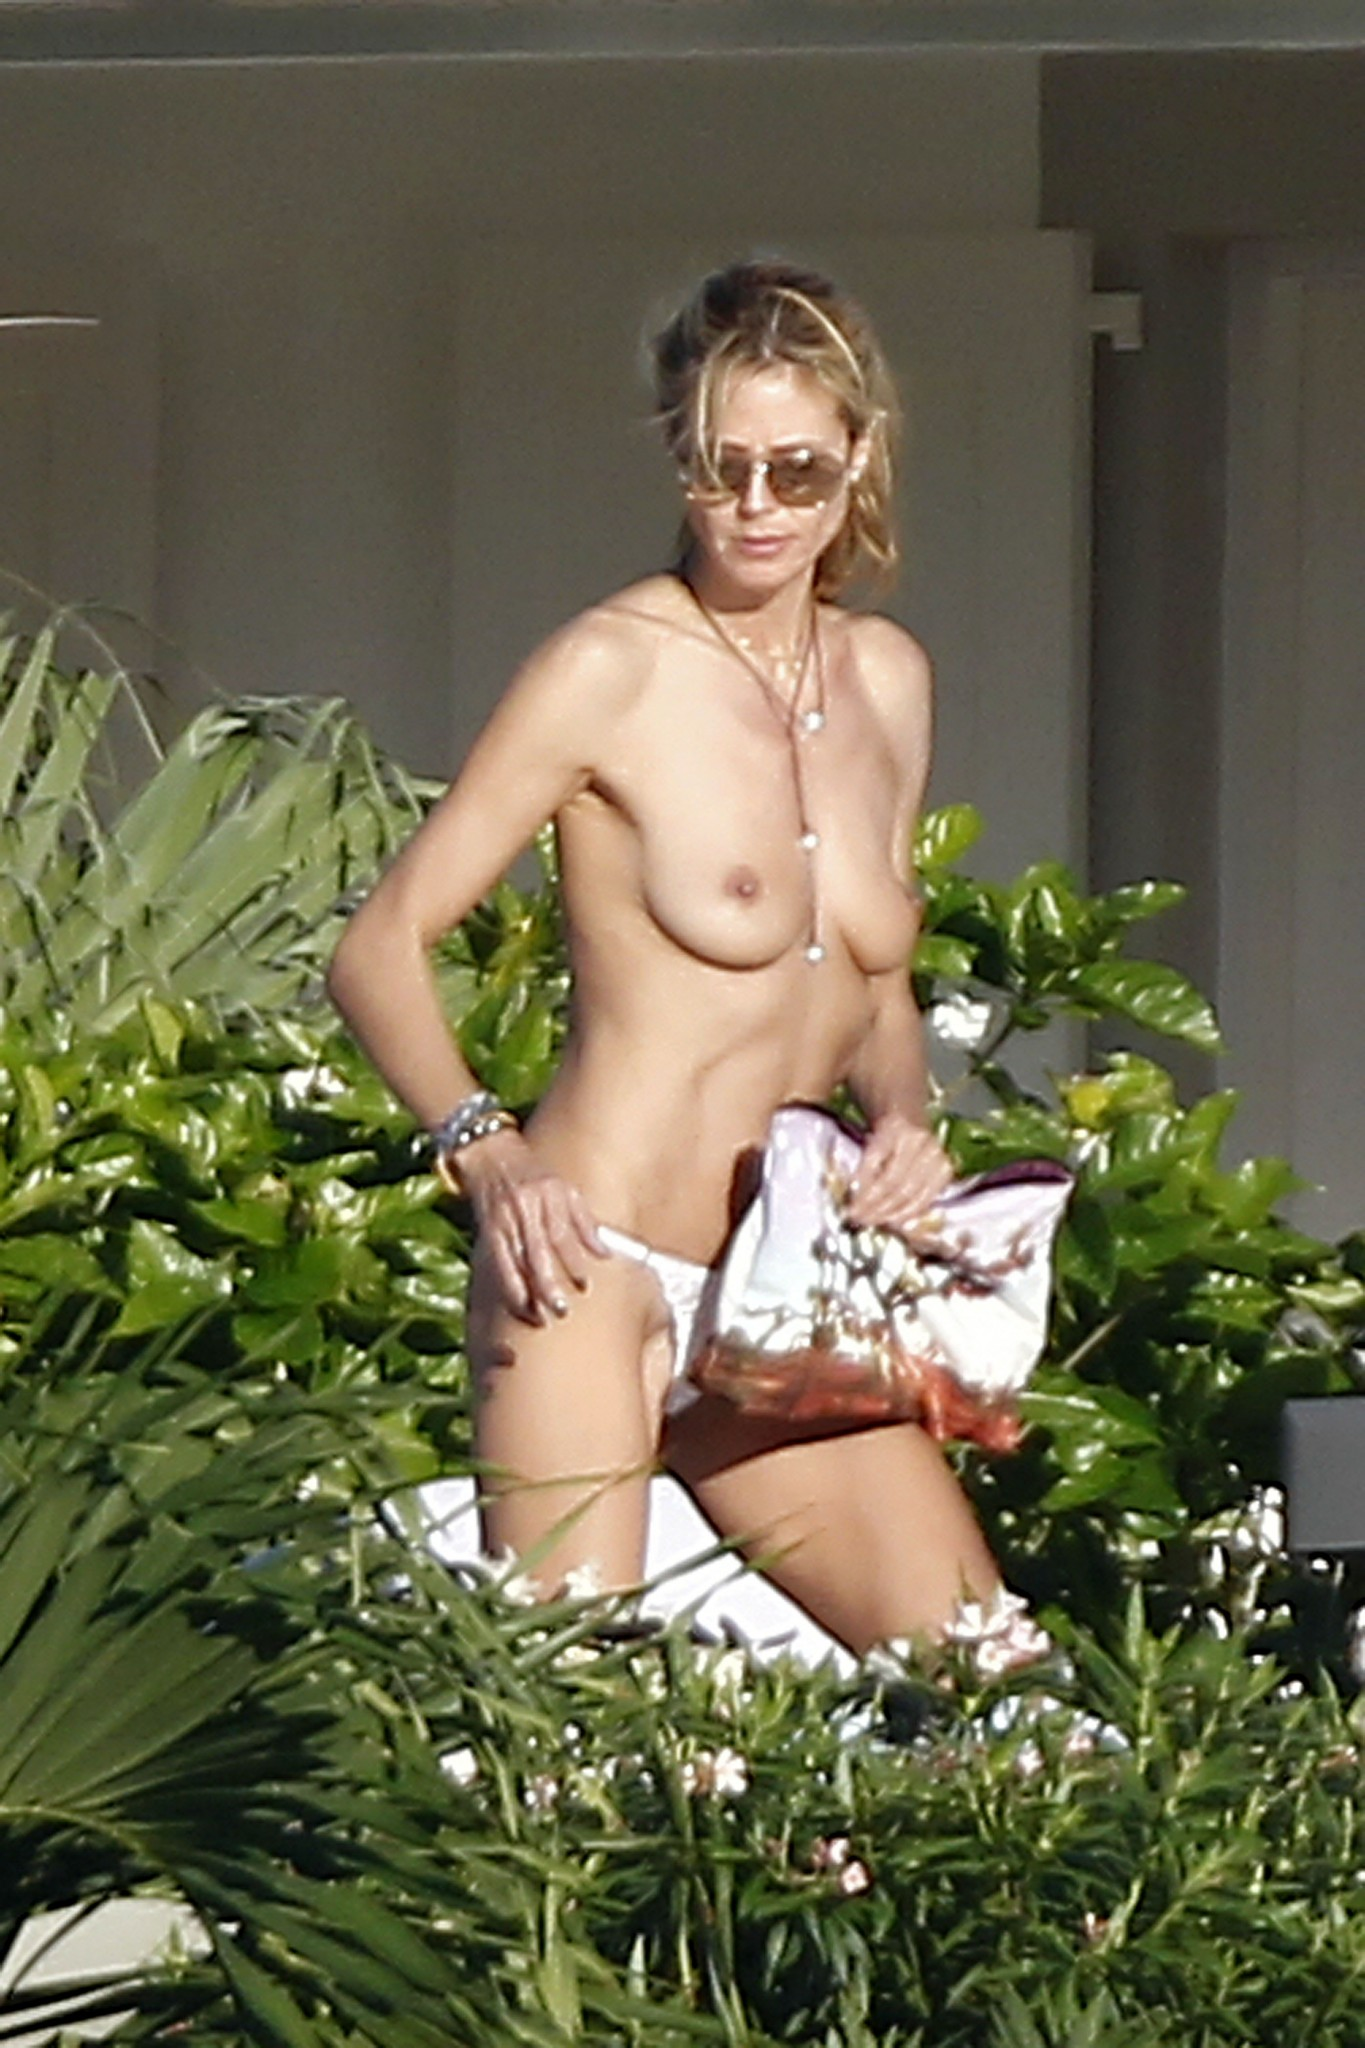 heidi-klum-caught-topless-in-st-barts-4.jpg